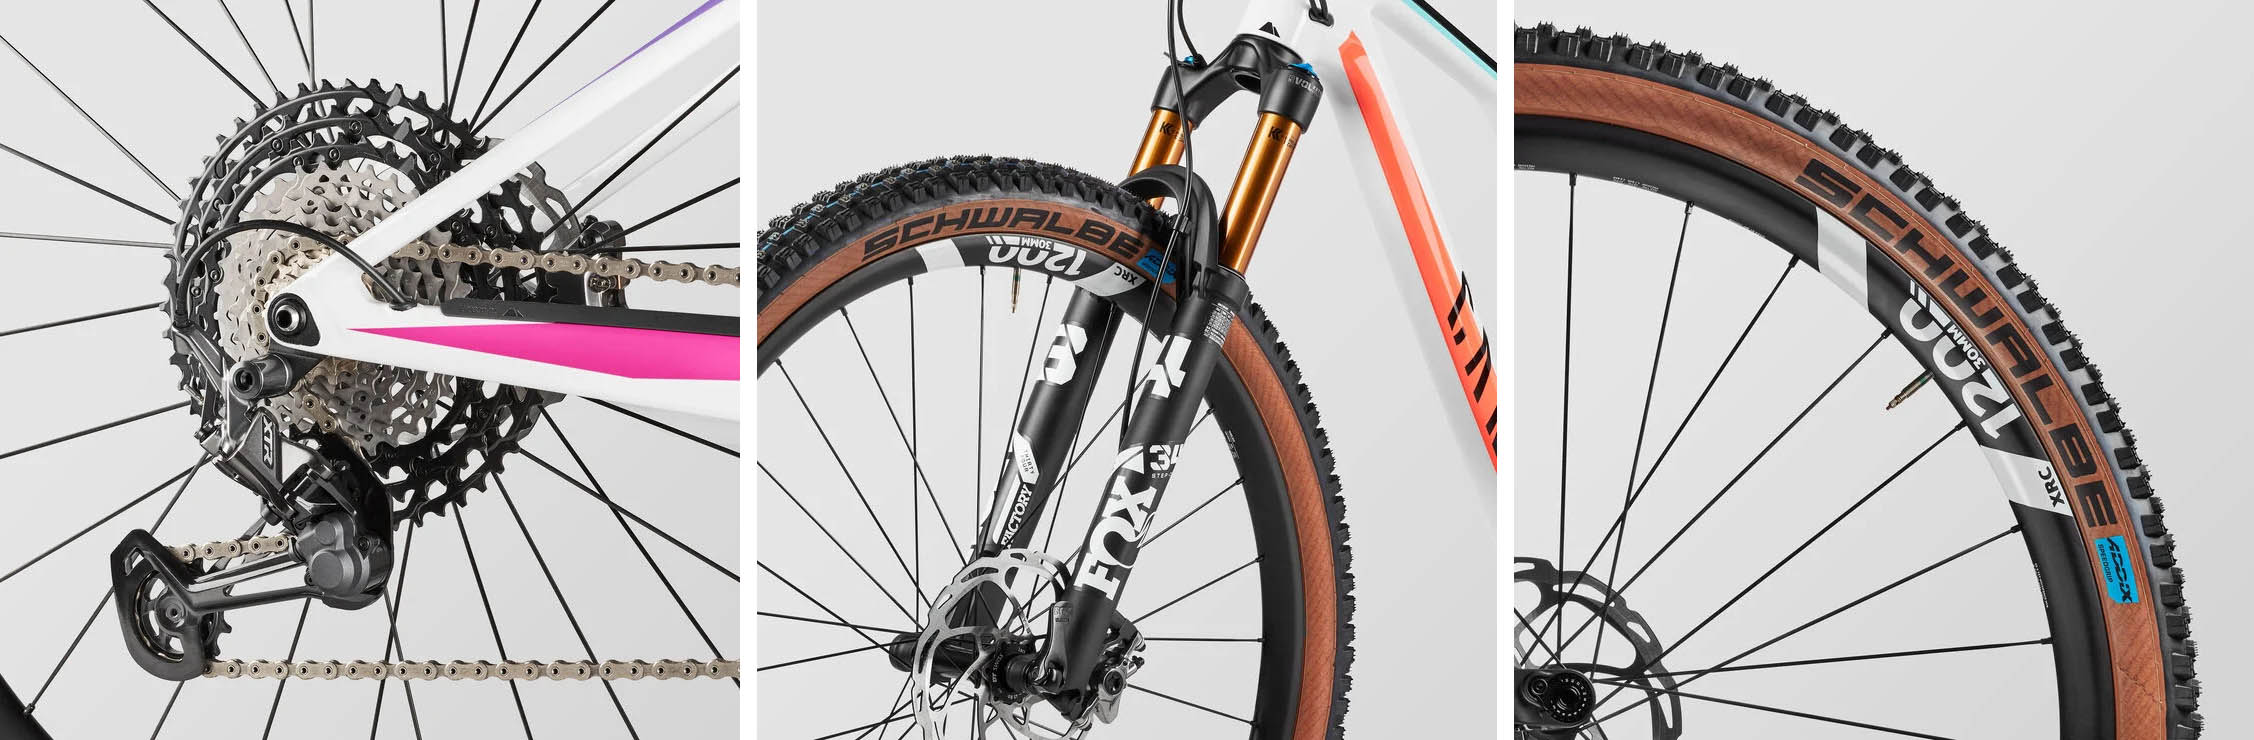 EB-Edition Canyon Lux Trail details